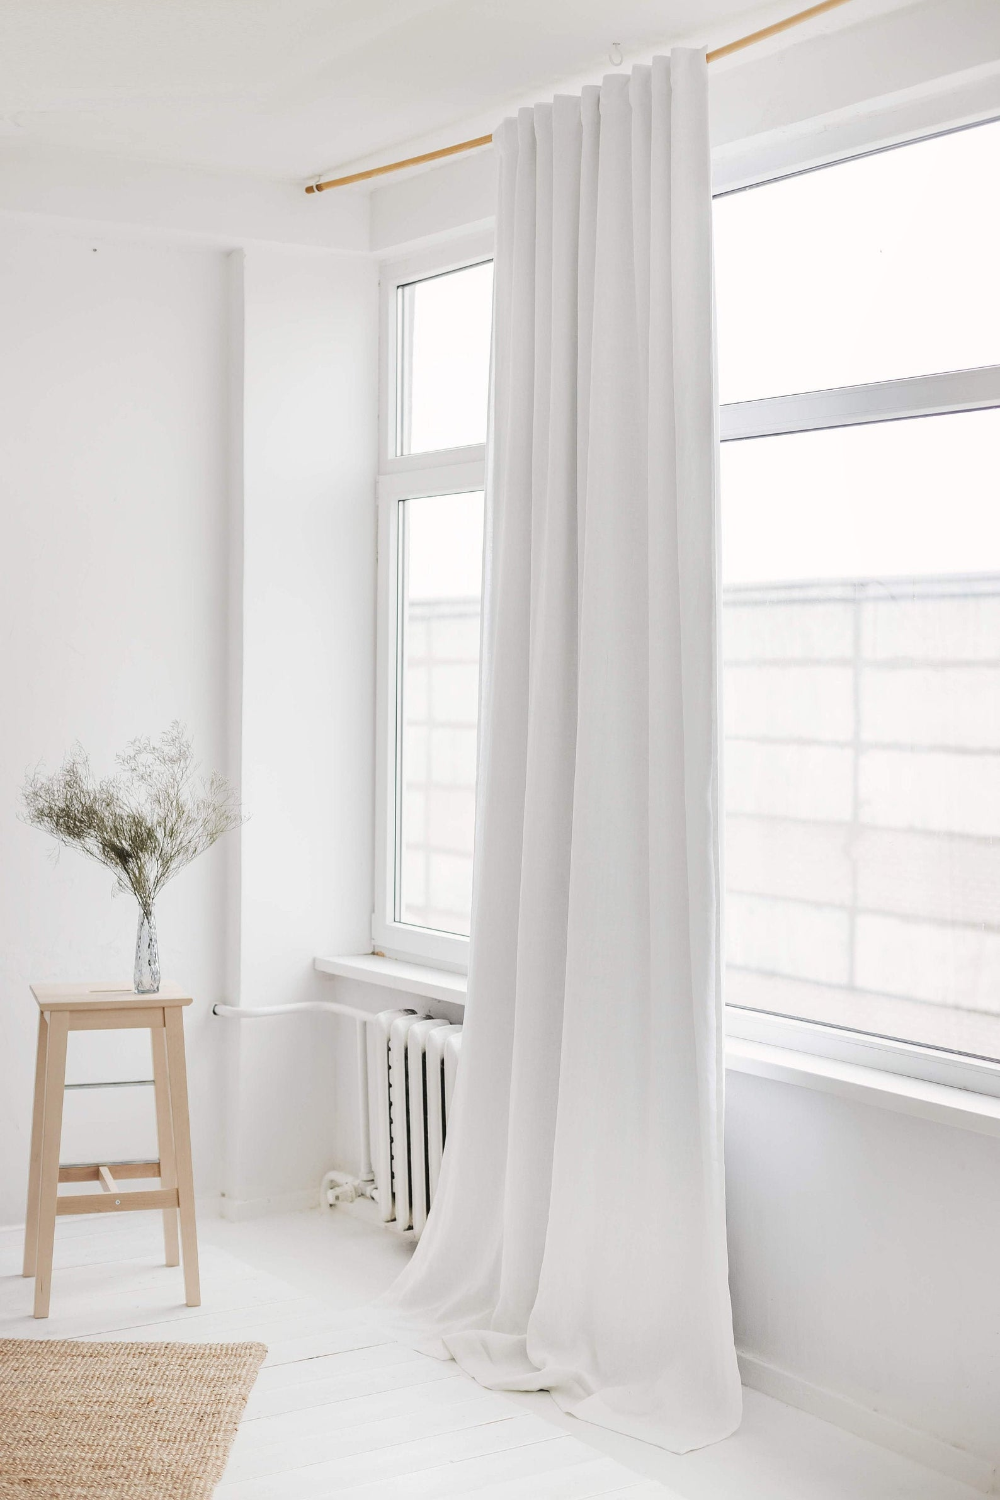 108 275 Cm Width Linen Curtain With Blackout Lining White Linen Window Drape Blackout Linen Curtain Panel Extra Wide Linen Curtain In 2020 Linen Blackout Curtains Linen Curtains Linen Curtain Panels